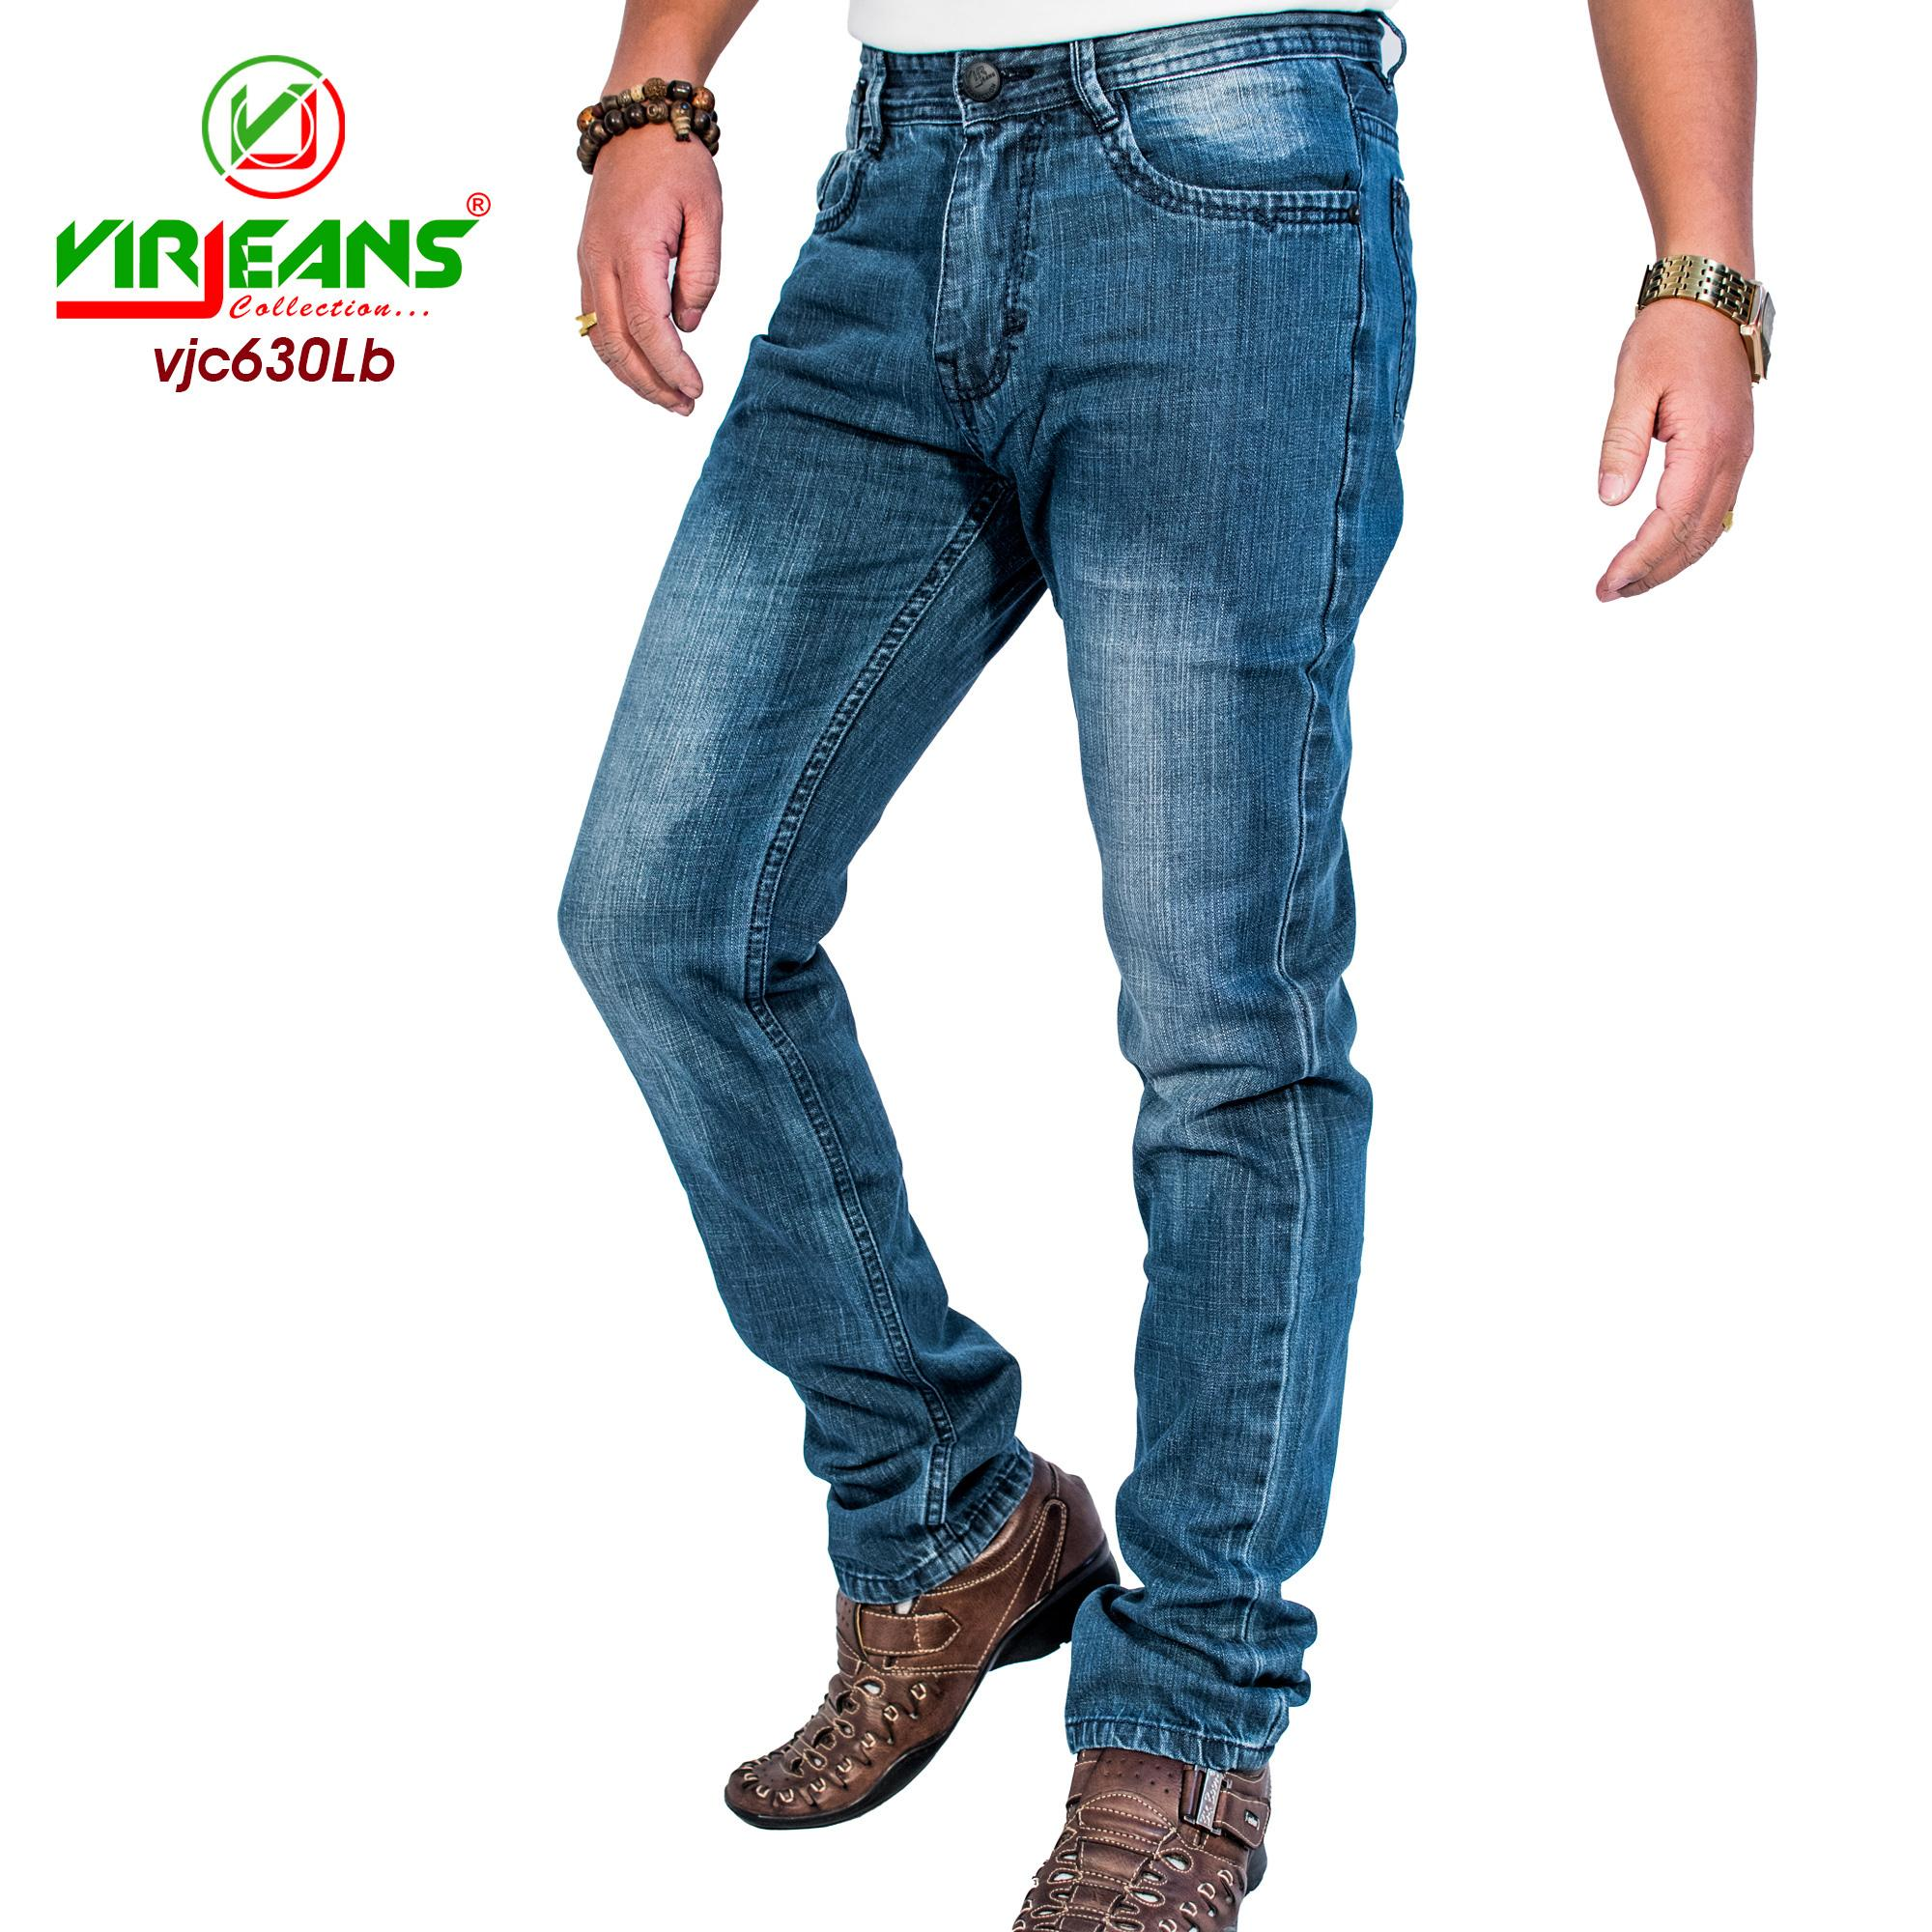 02a201da800 Men s Clothing In Nepal At Best Prices - Daraz.com.np